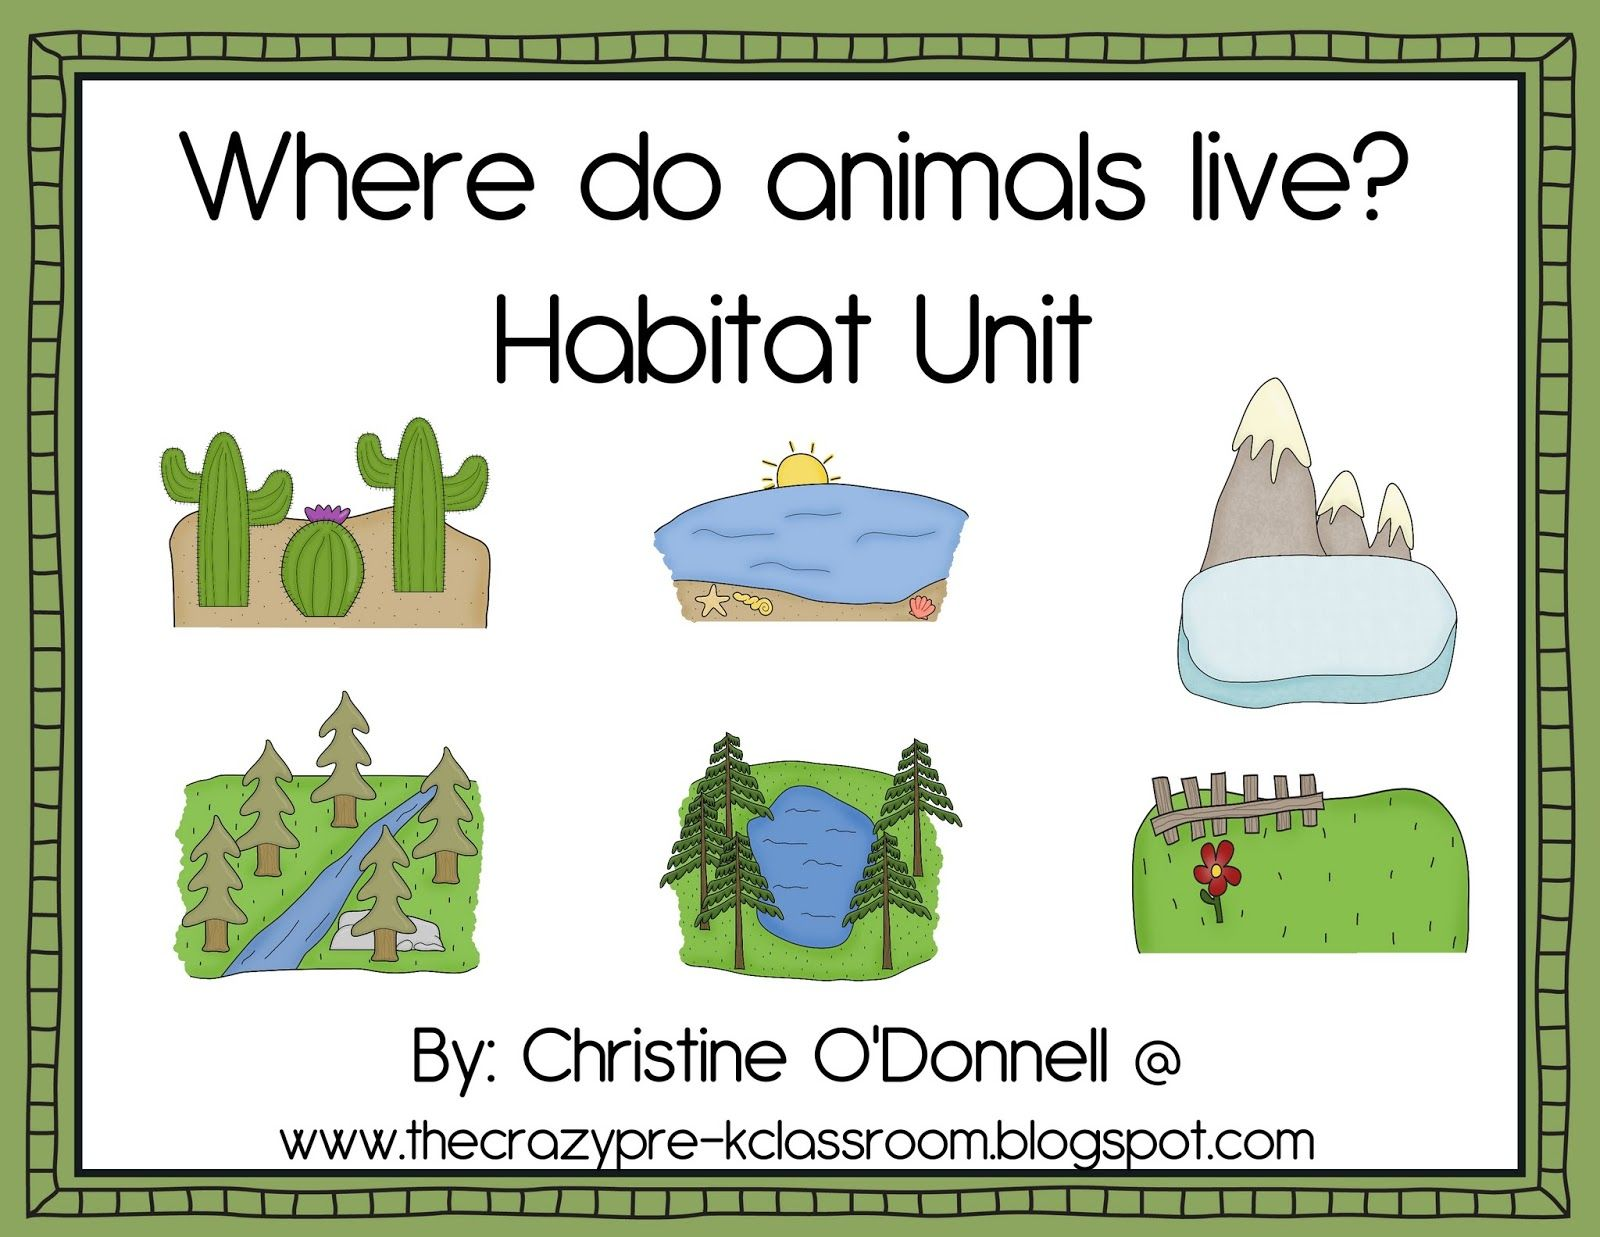 worksheet Habitats Of Animals For Kids Worksheet animal habitats printables product where do animals live 11 minibooks 206p